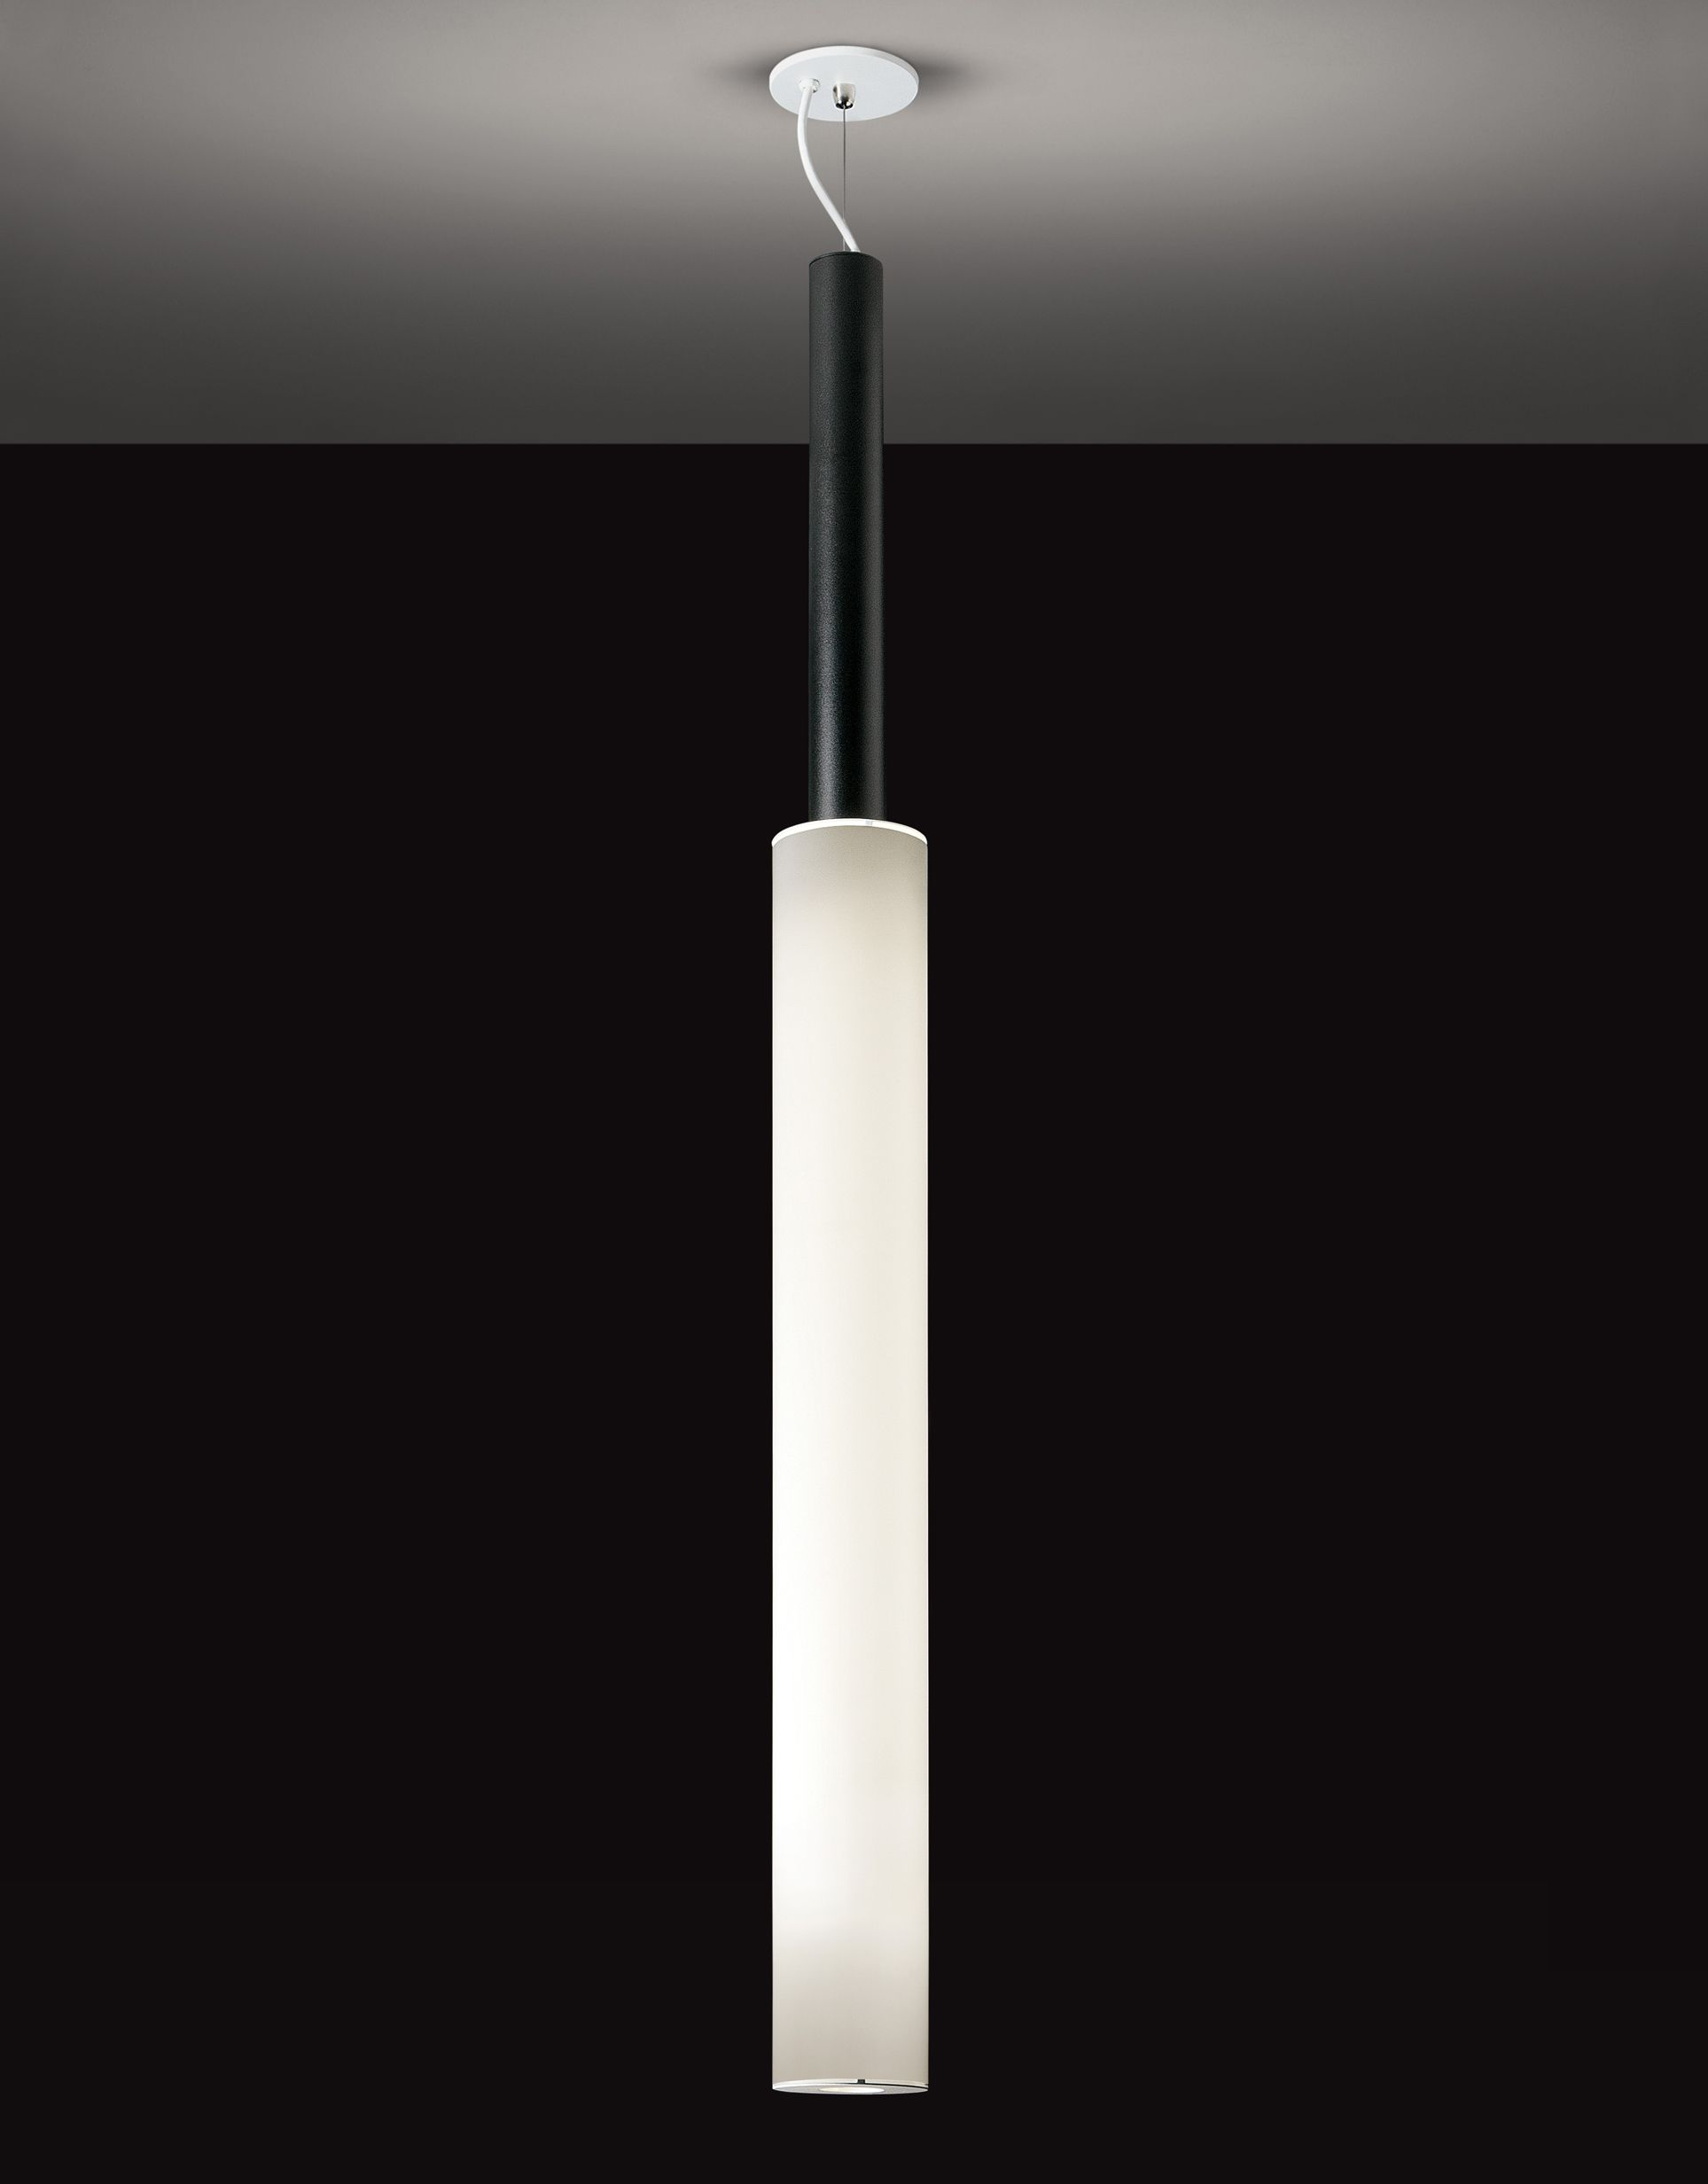 Tubie 5 pendant ocl architectural lighting product tubie